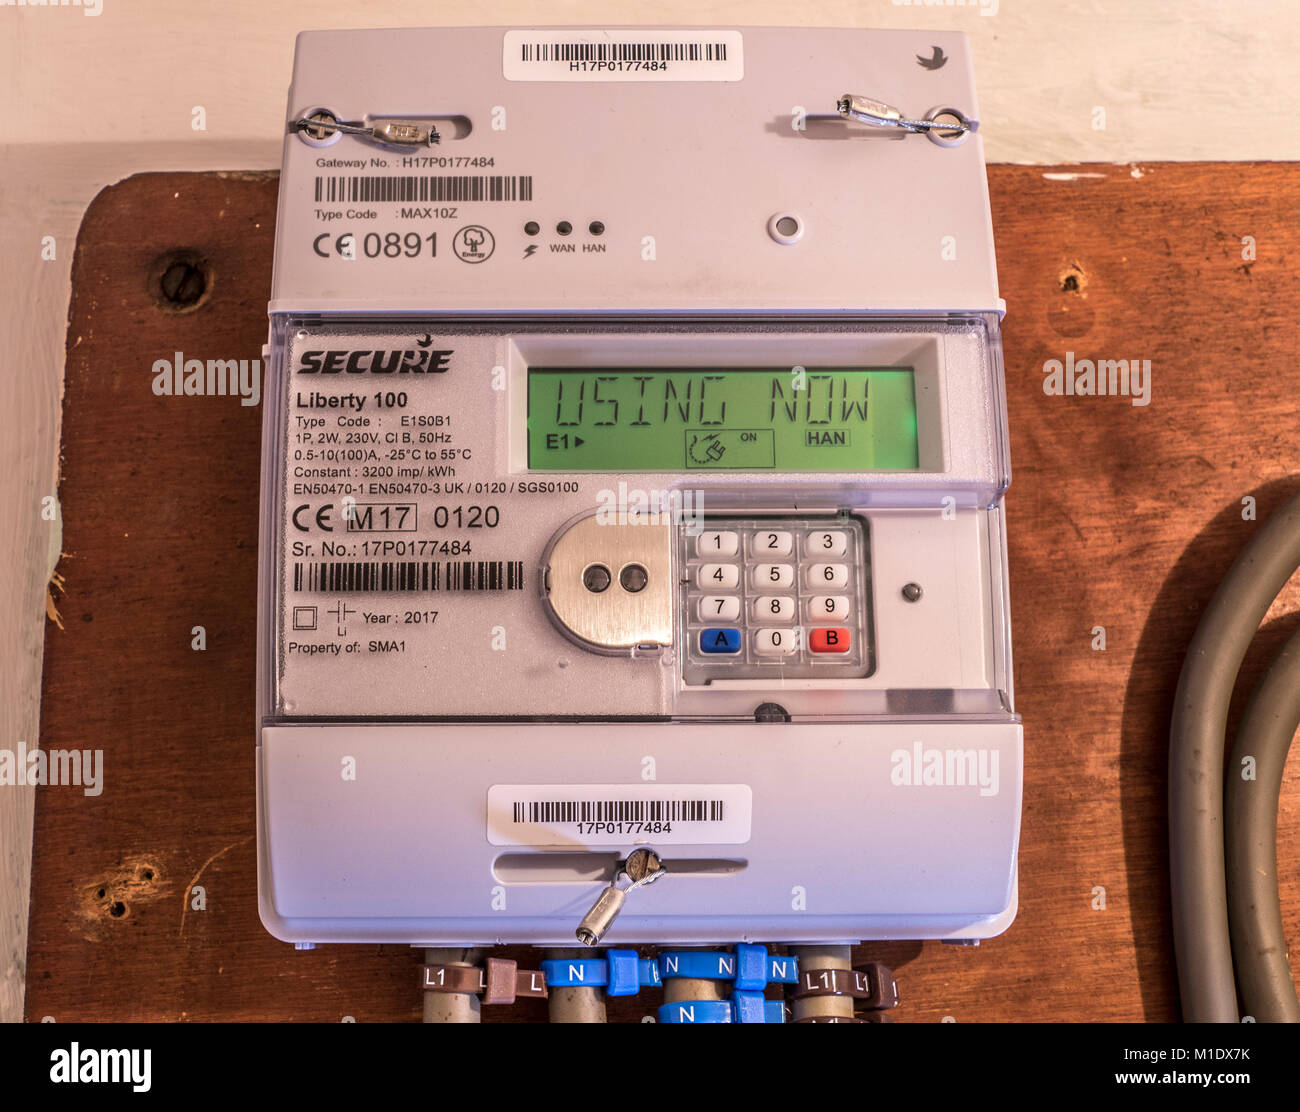 Secure Liberty 100 smart electricity meter, measuring consumption and relaying 'Using Now' information via - Stock Image